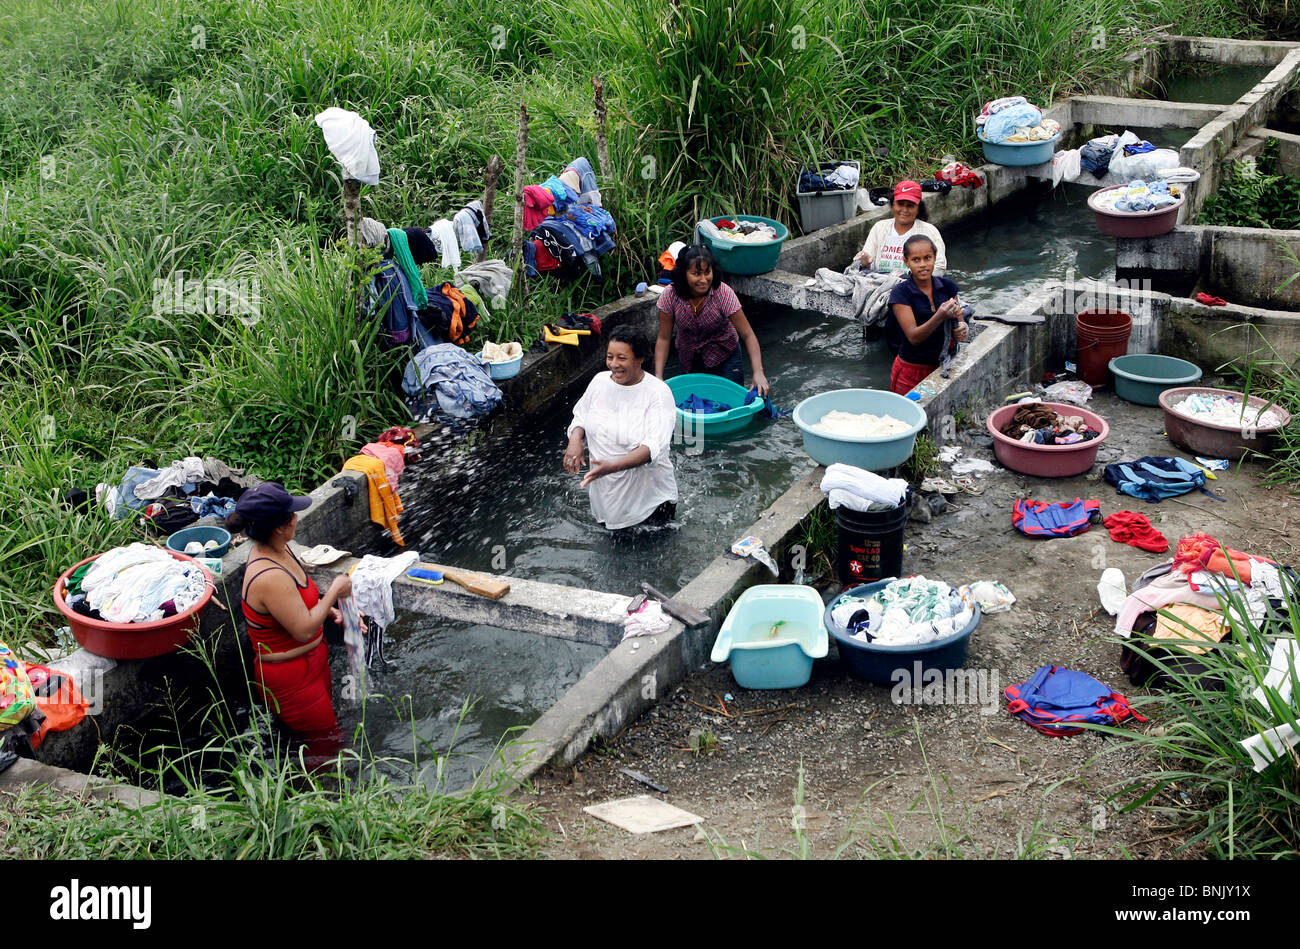 Women washing laundry in a small river in Ecuador, South America on Sept. 3, 2005. - Stock Image